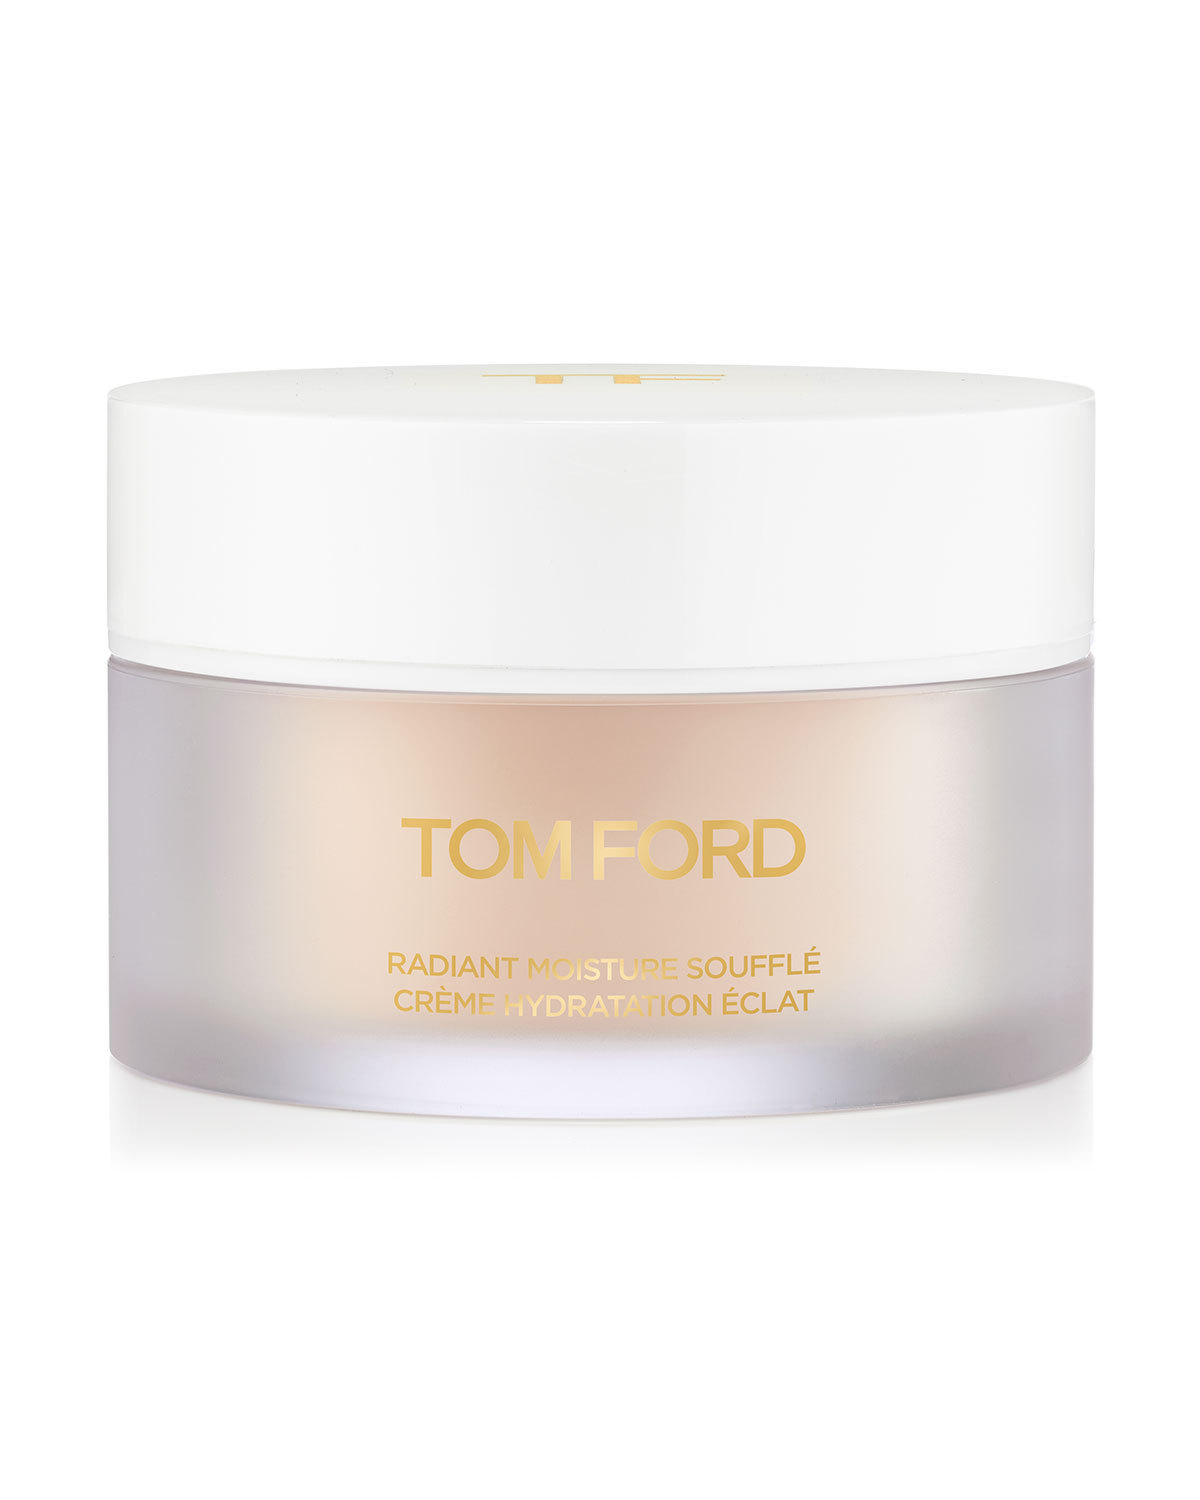 限定 TOM FORD Radiant Moisture Souffle フェイス クリーム